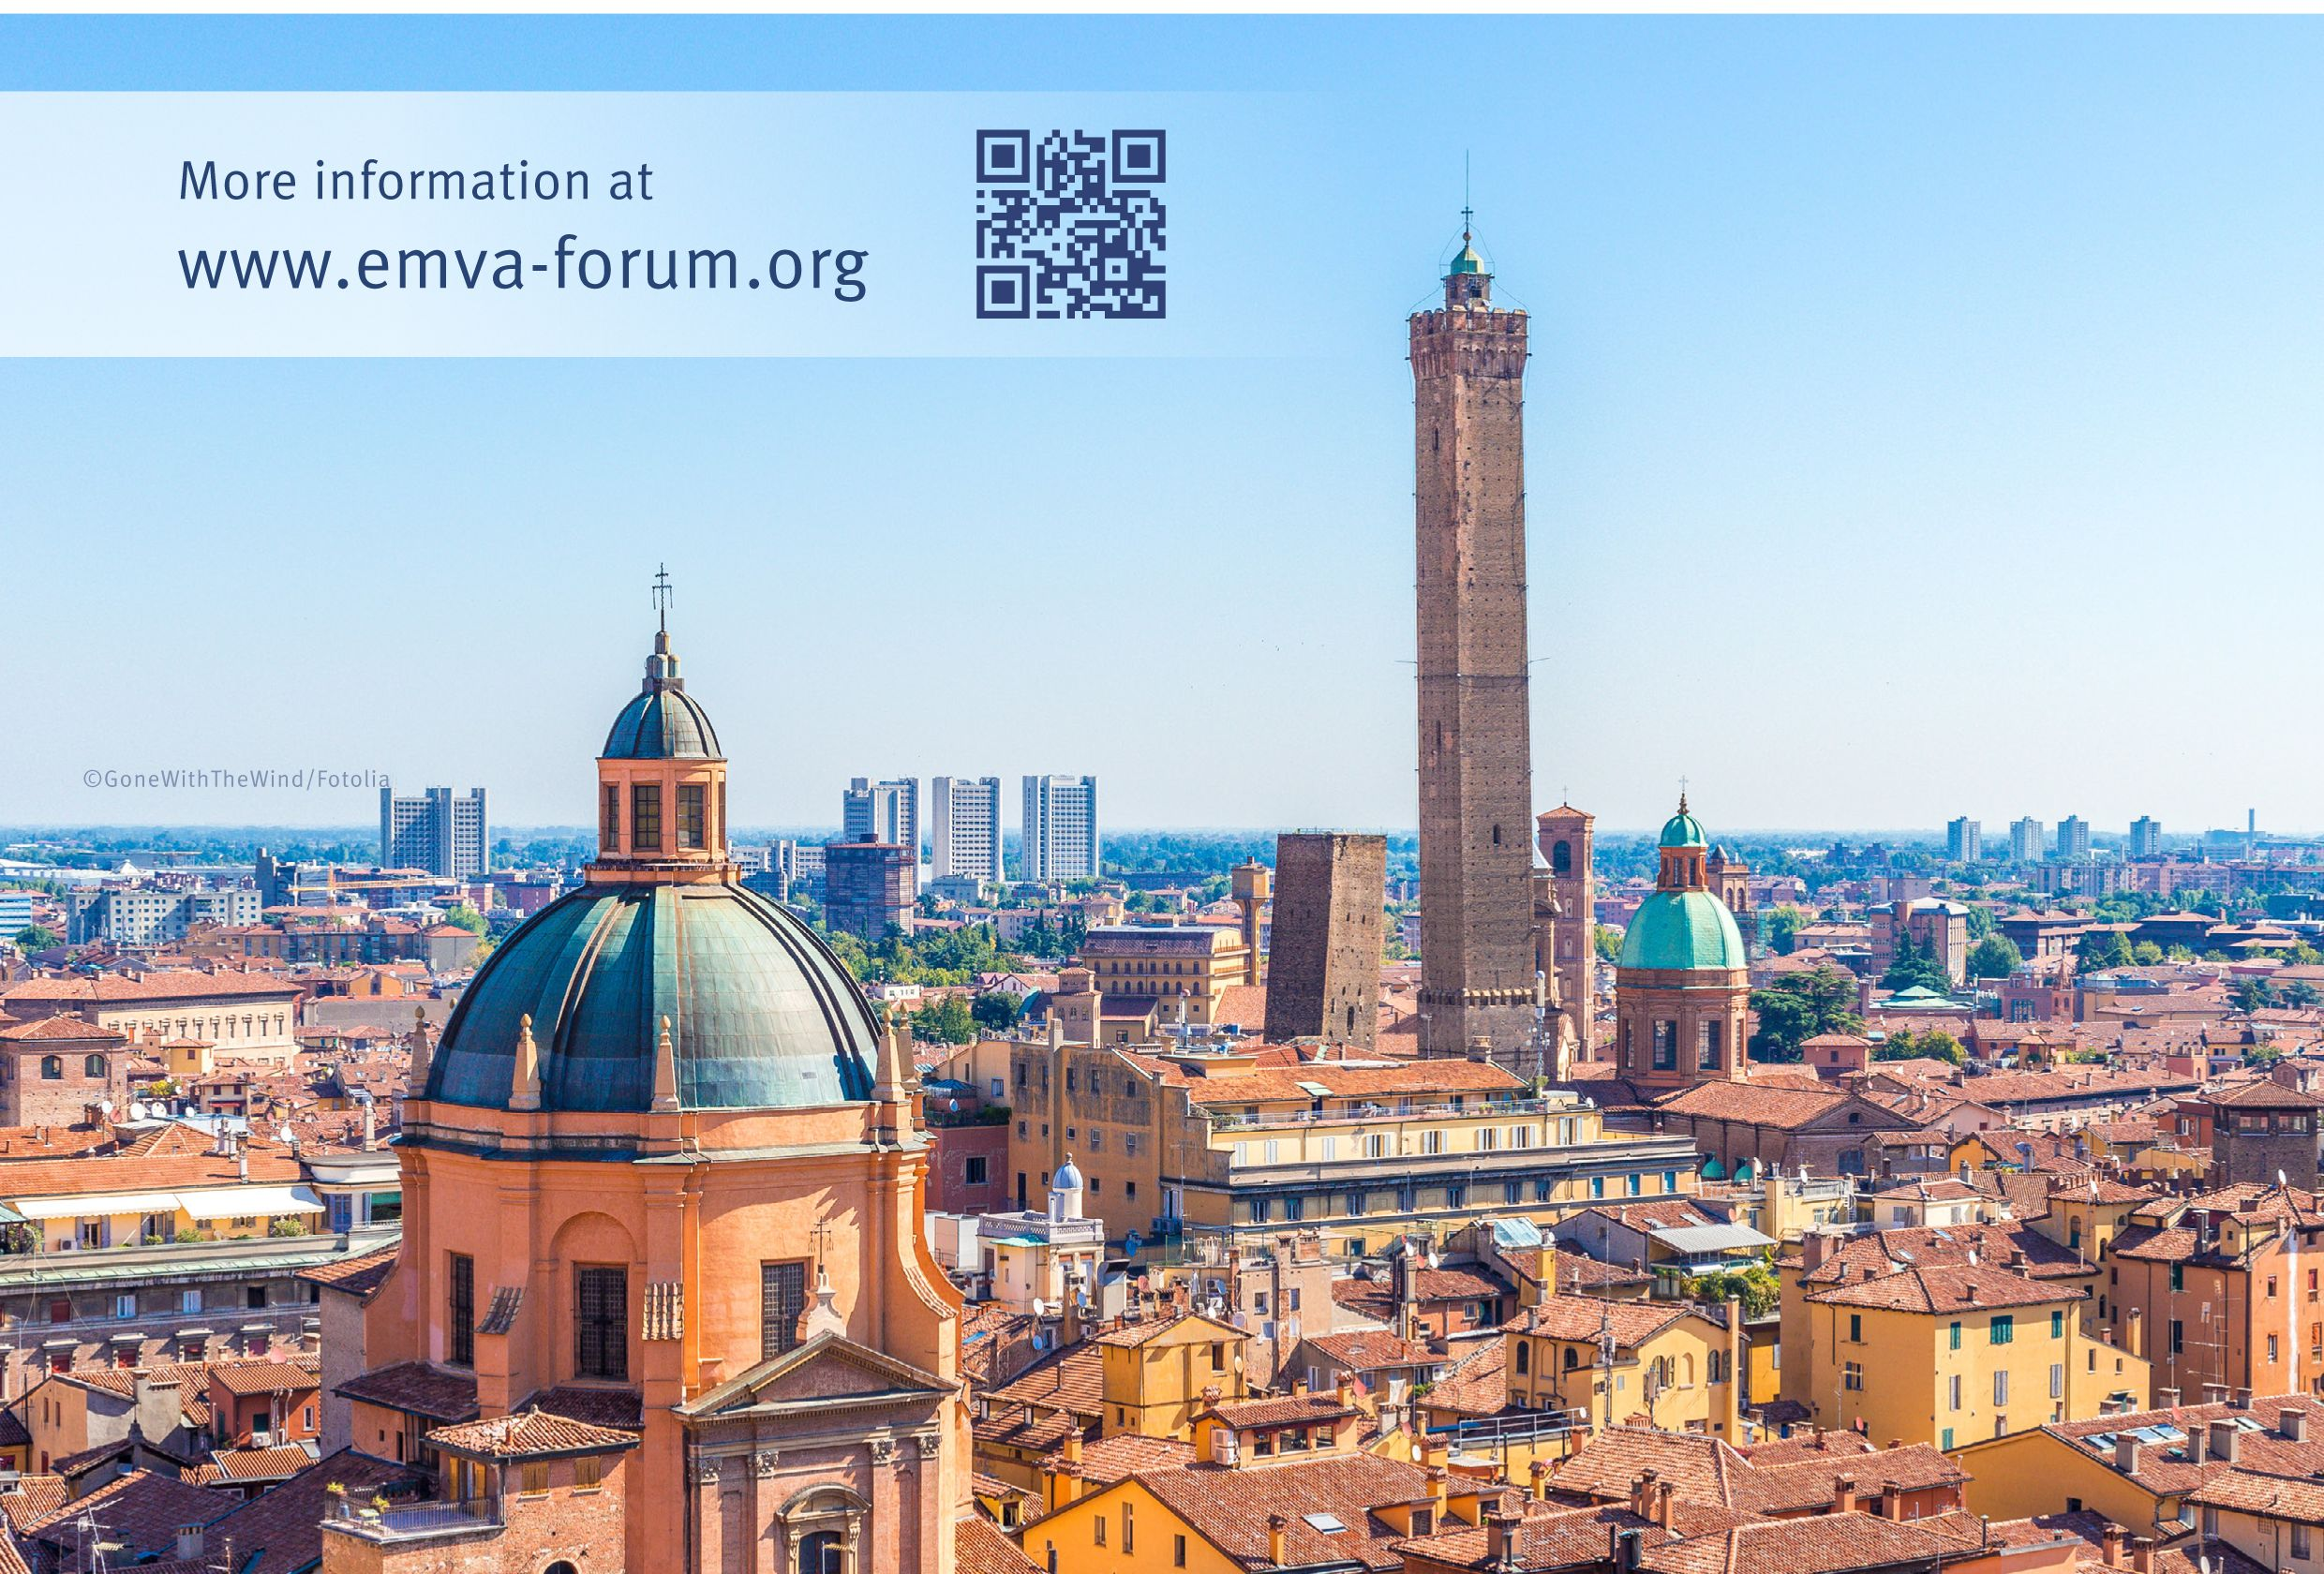 3. EMVA MV Forum: Call for Papers